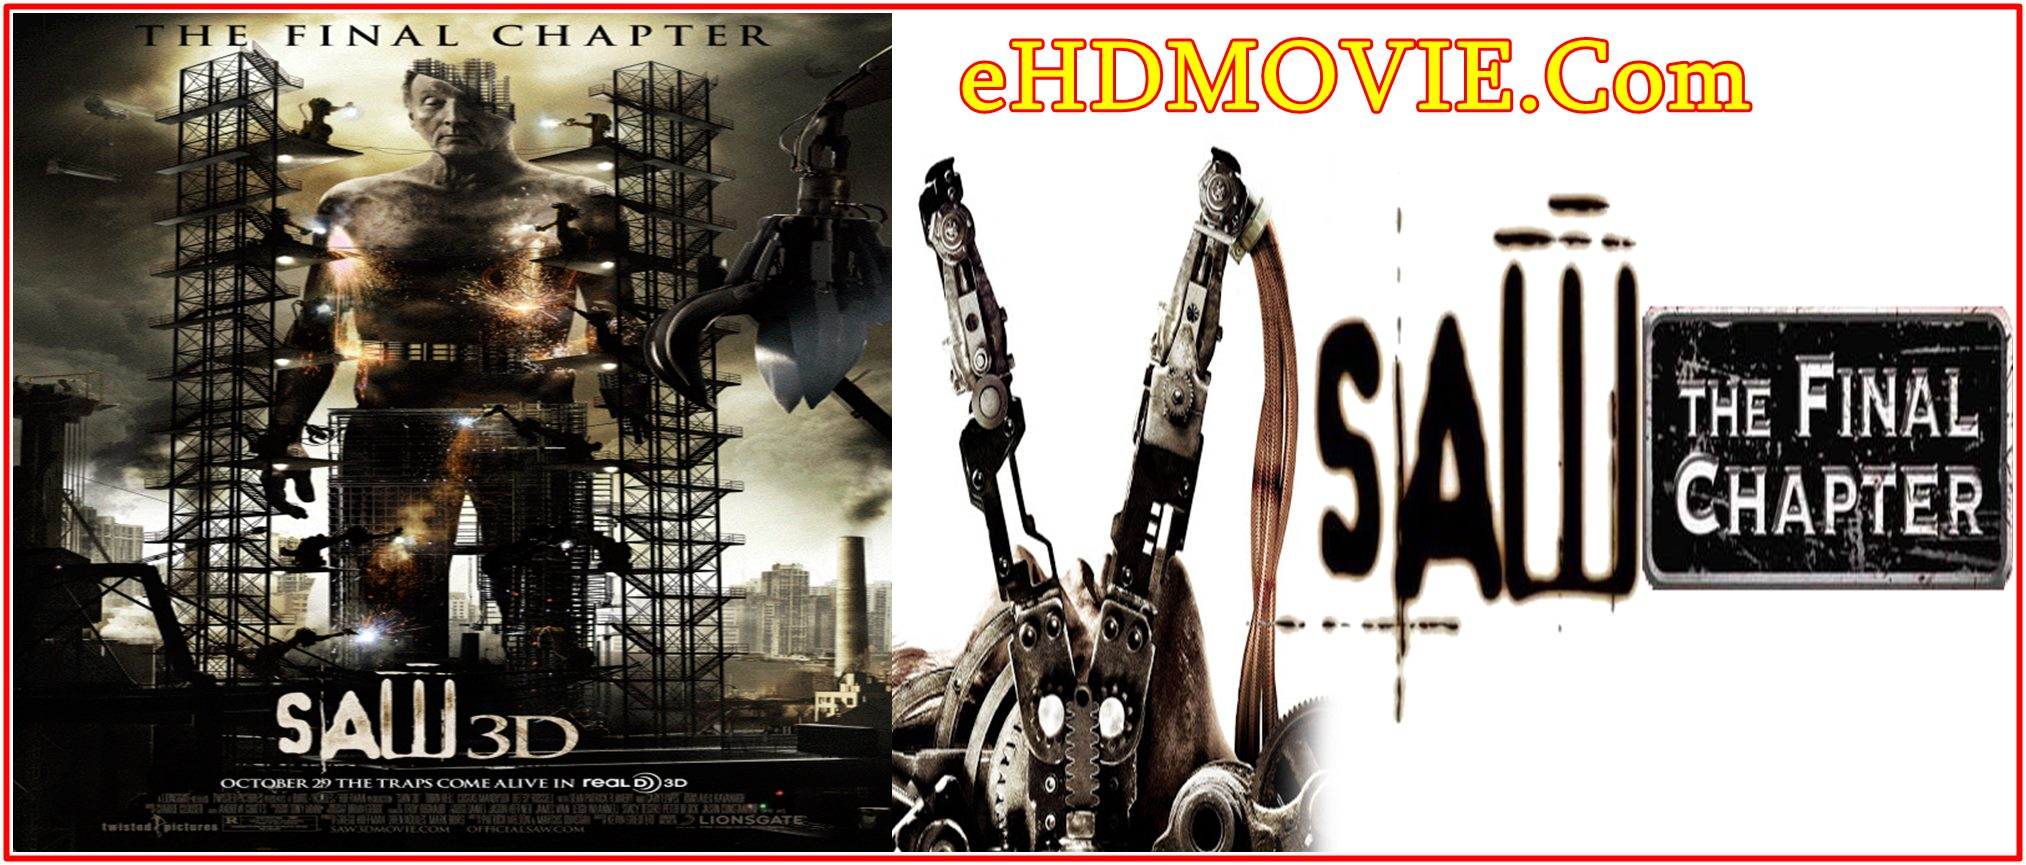 Saw 3D: The Final Chapter 2010 Full Movie English 720p – 480p ORG BRRip 350MB – 750MB ESubs Free Download